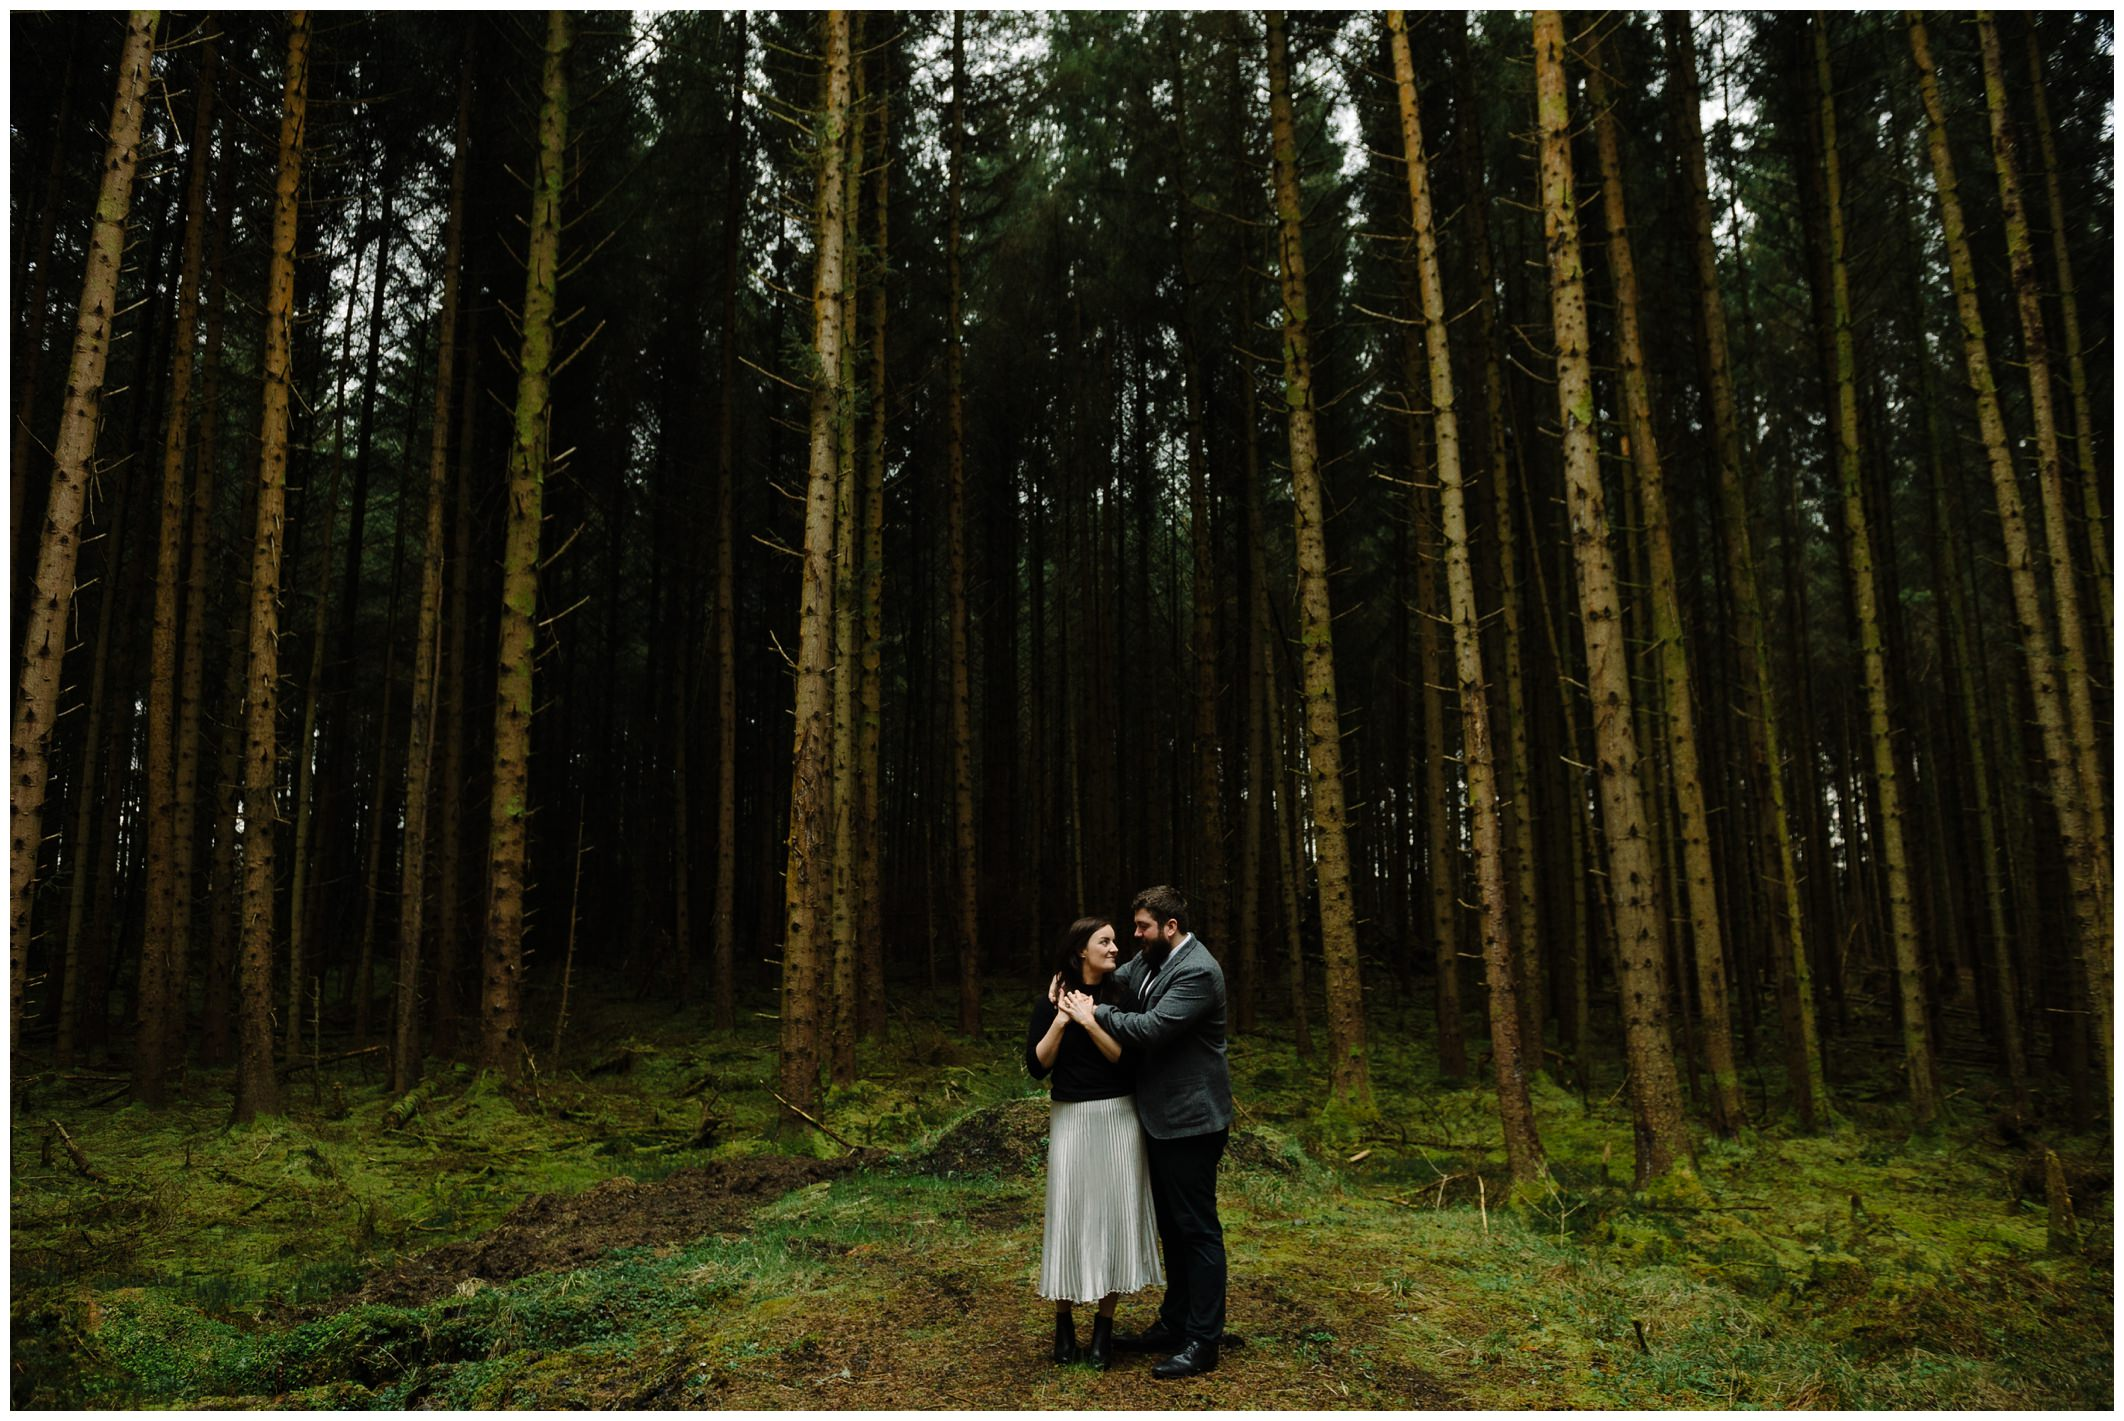 couple_shoot_navar_forest_jude_browne_photography_0001.jpg